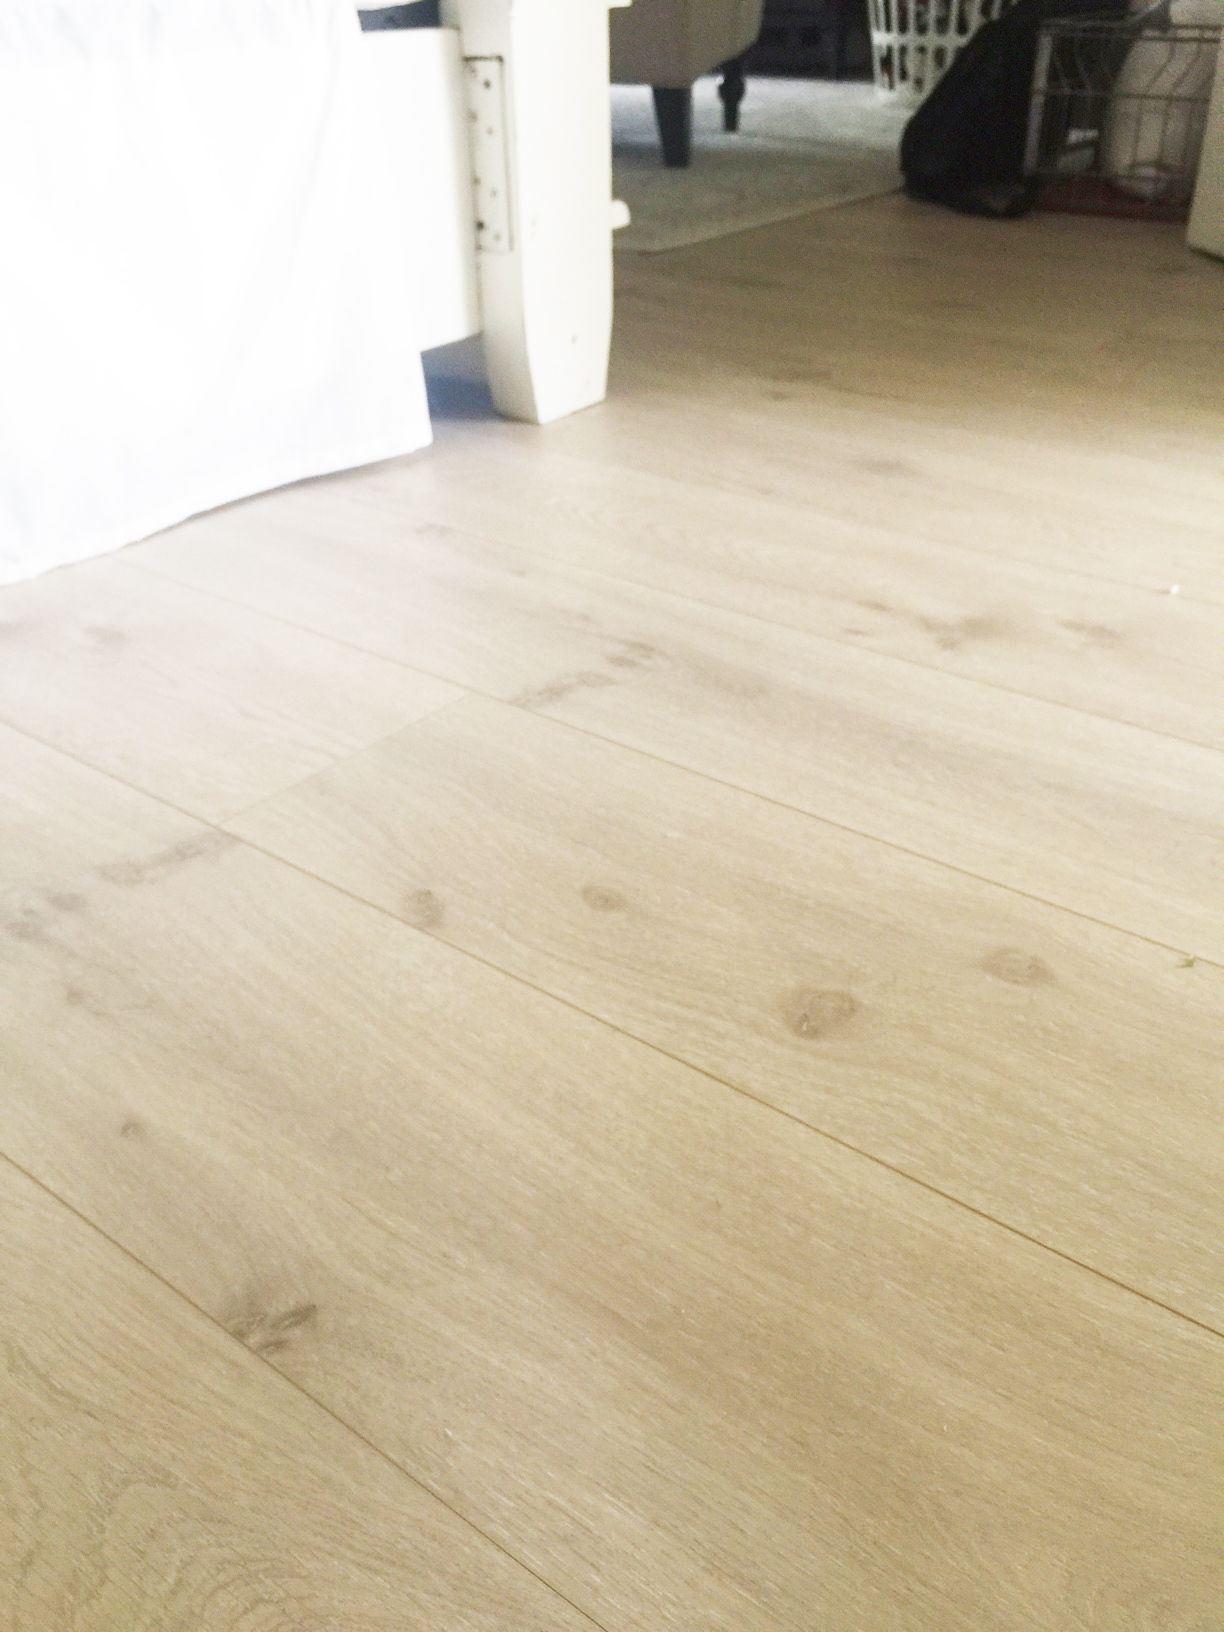 install pergo laminate flooring for a farmhouse look laminate